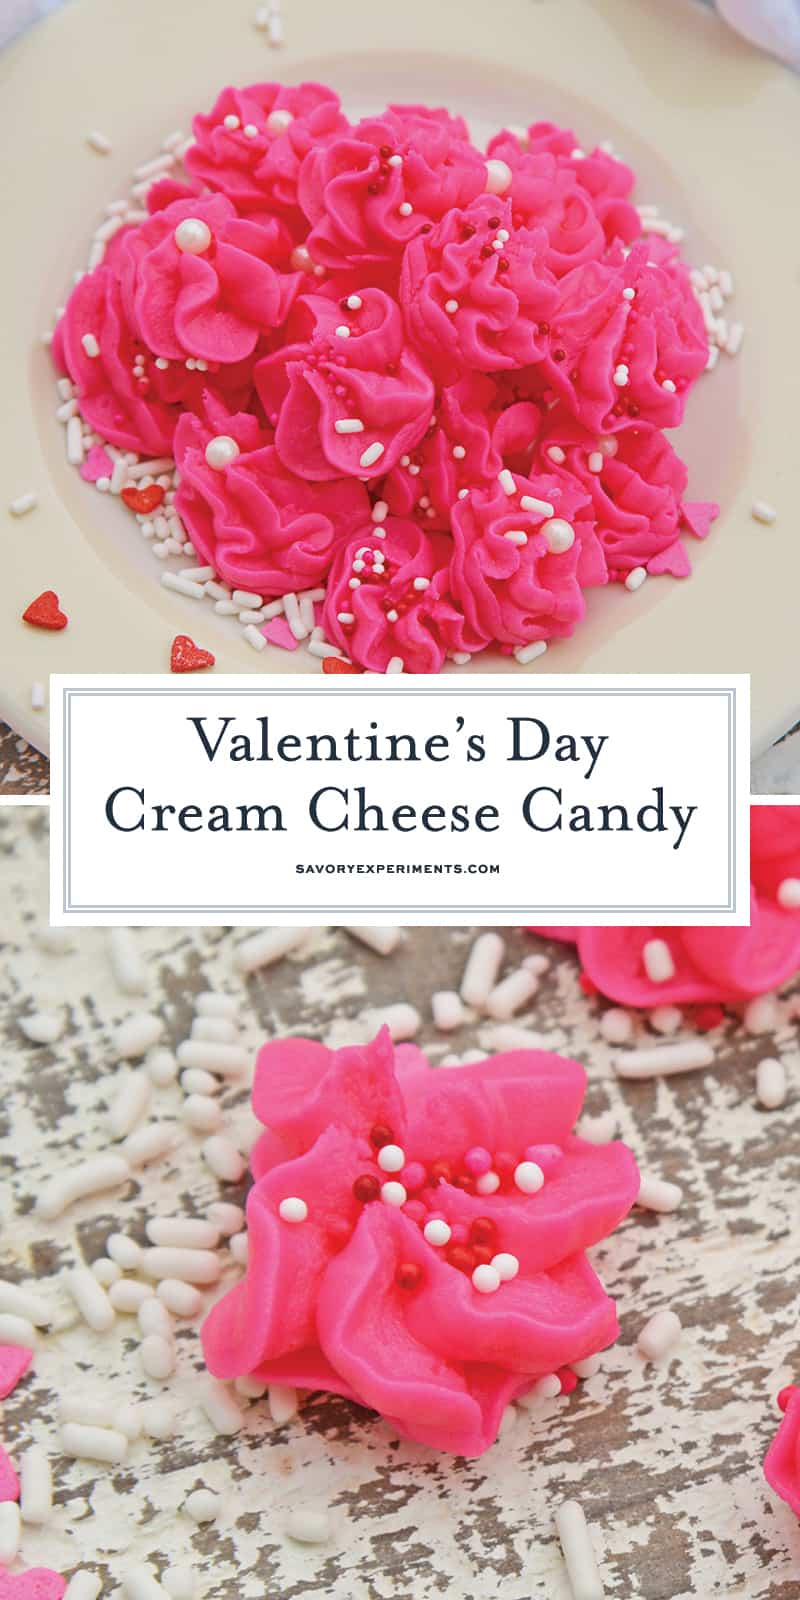 Valentine's Day Cream Cheese Candy is an easy no-bake dessert perfect for every Valentine's Day party! #creamcheesecandy #merrimints #valentinesday www.savoryexperiments.com